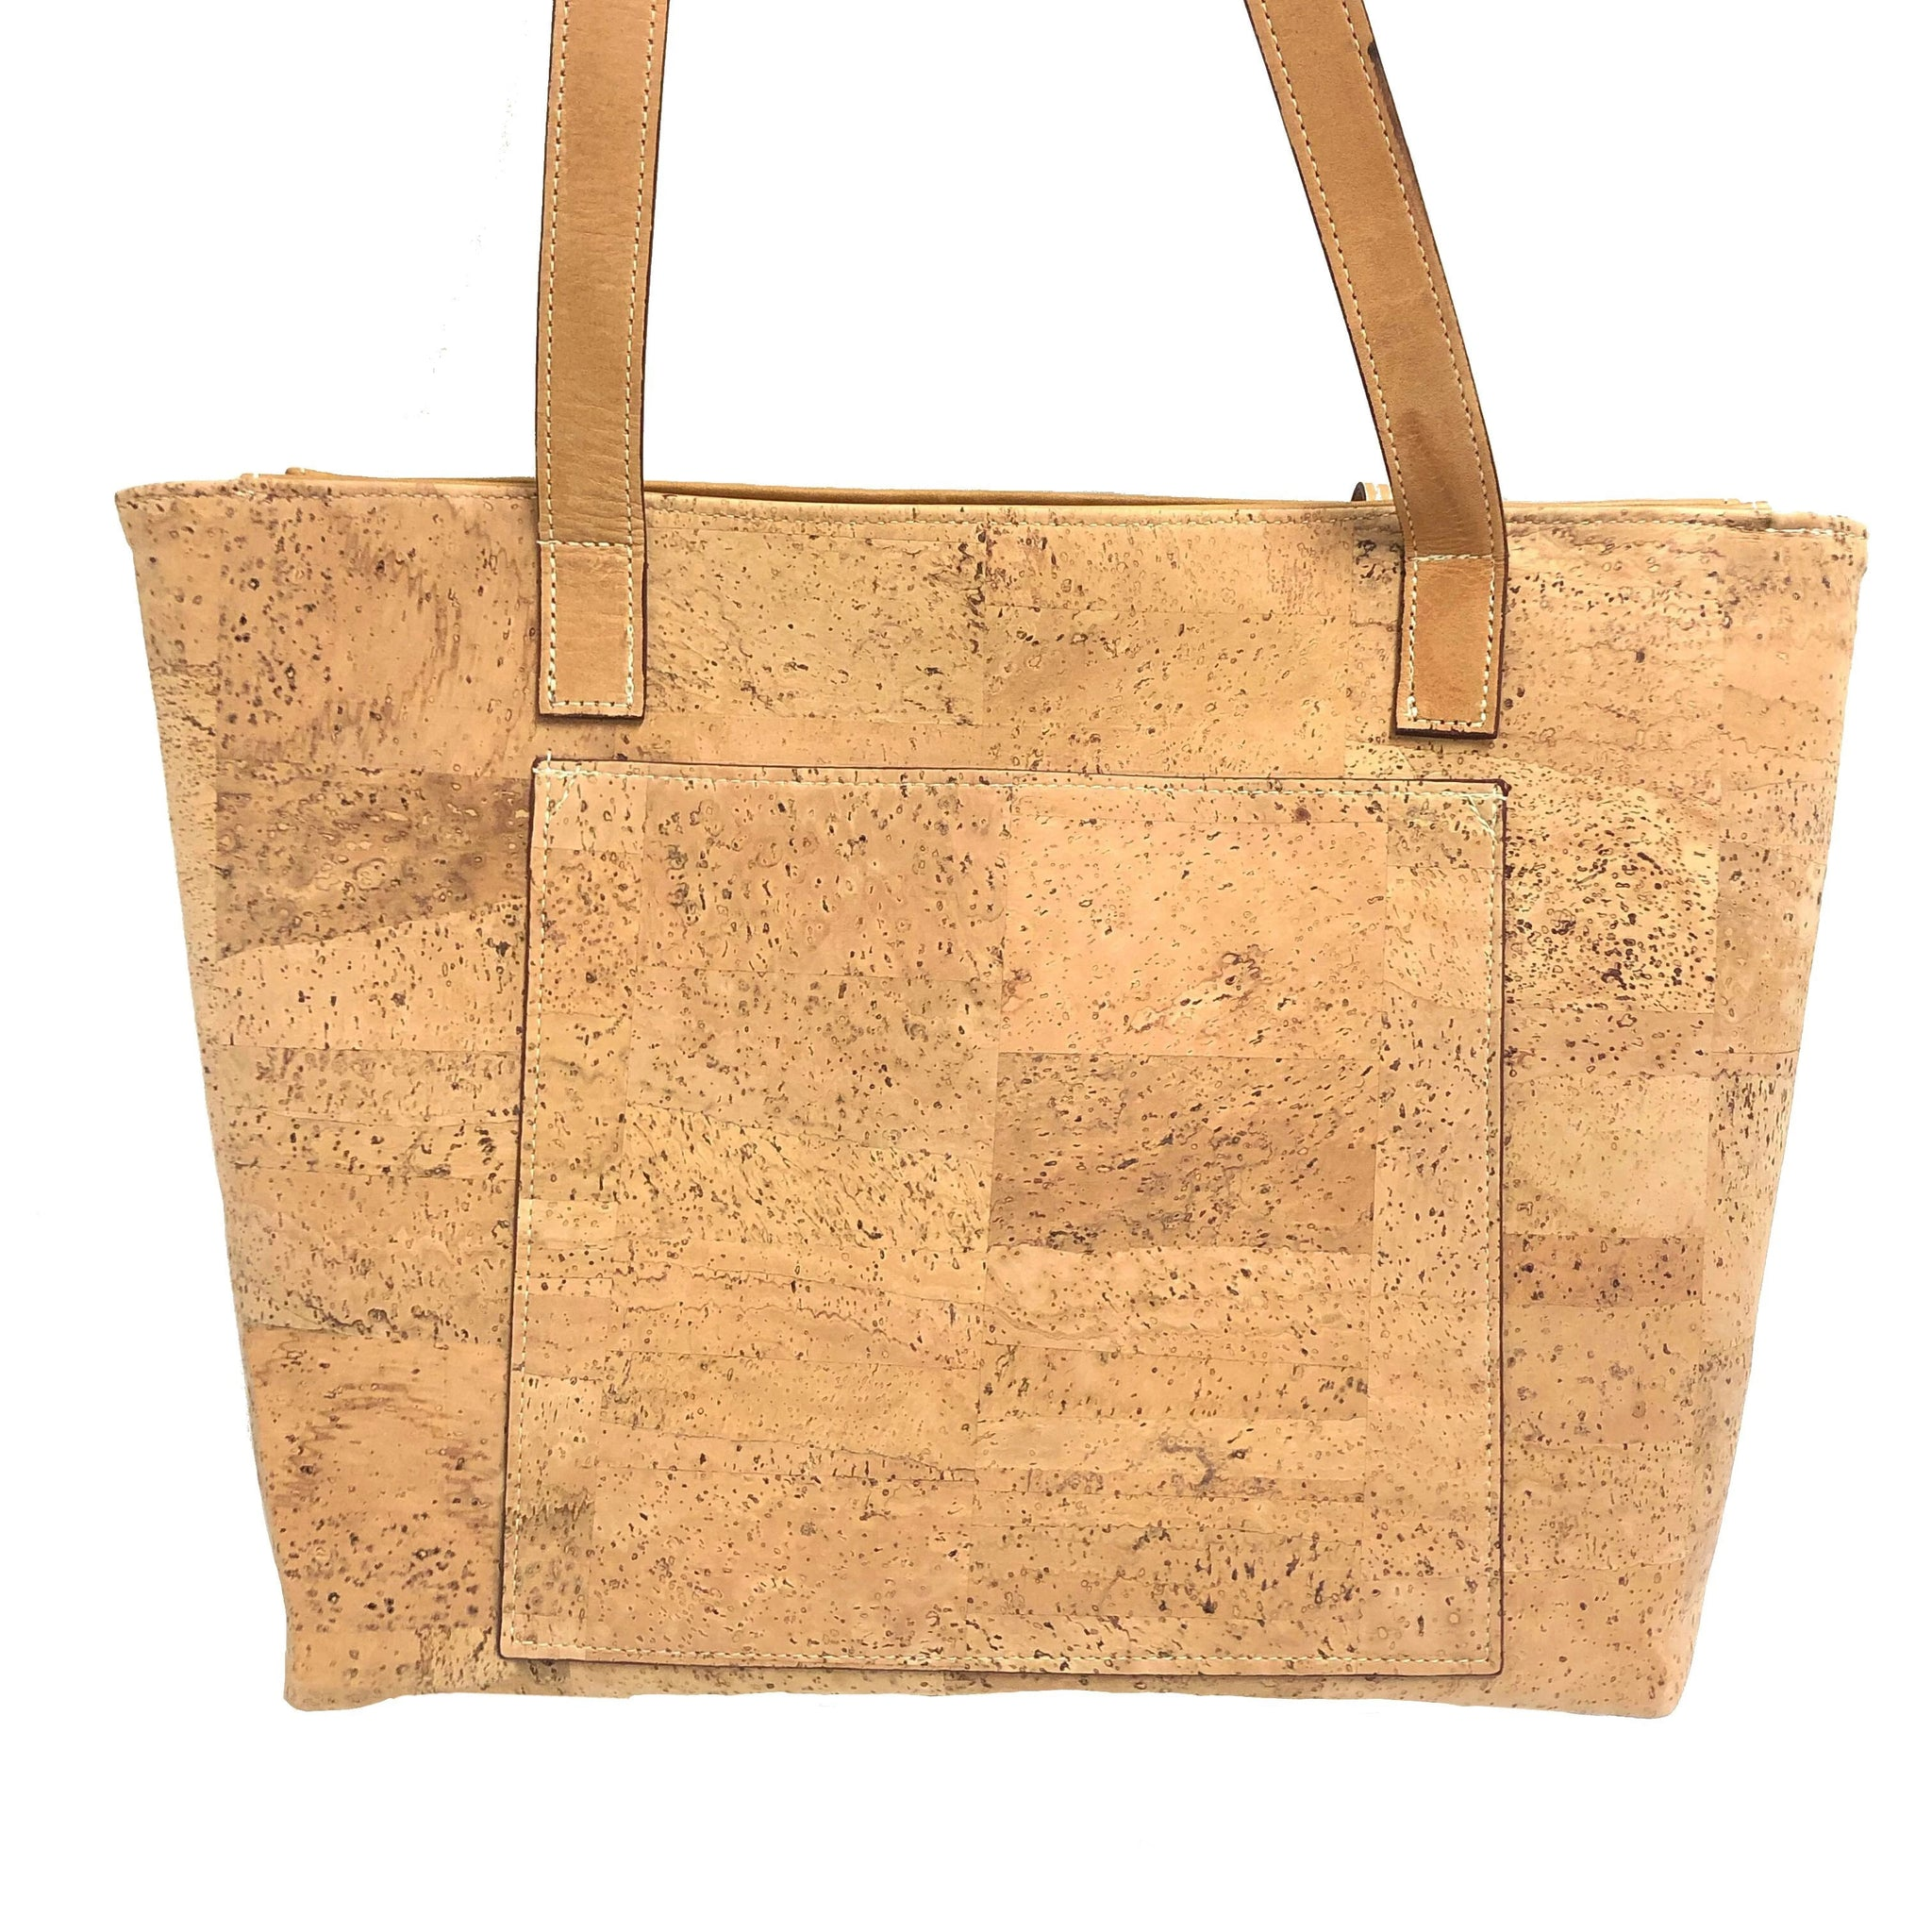 Burque cork tote handbag natural